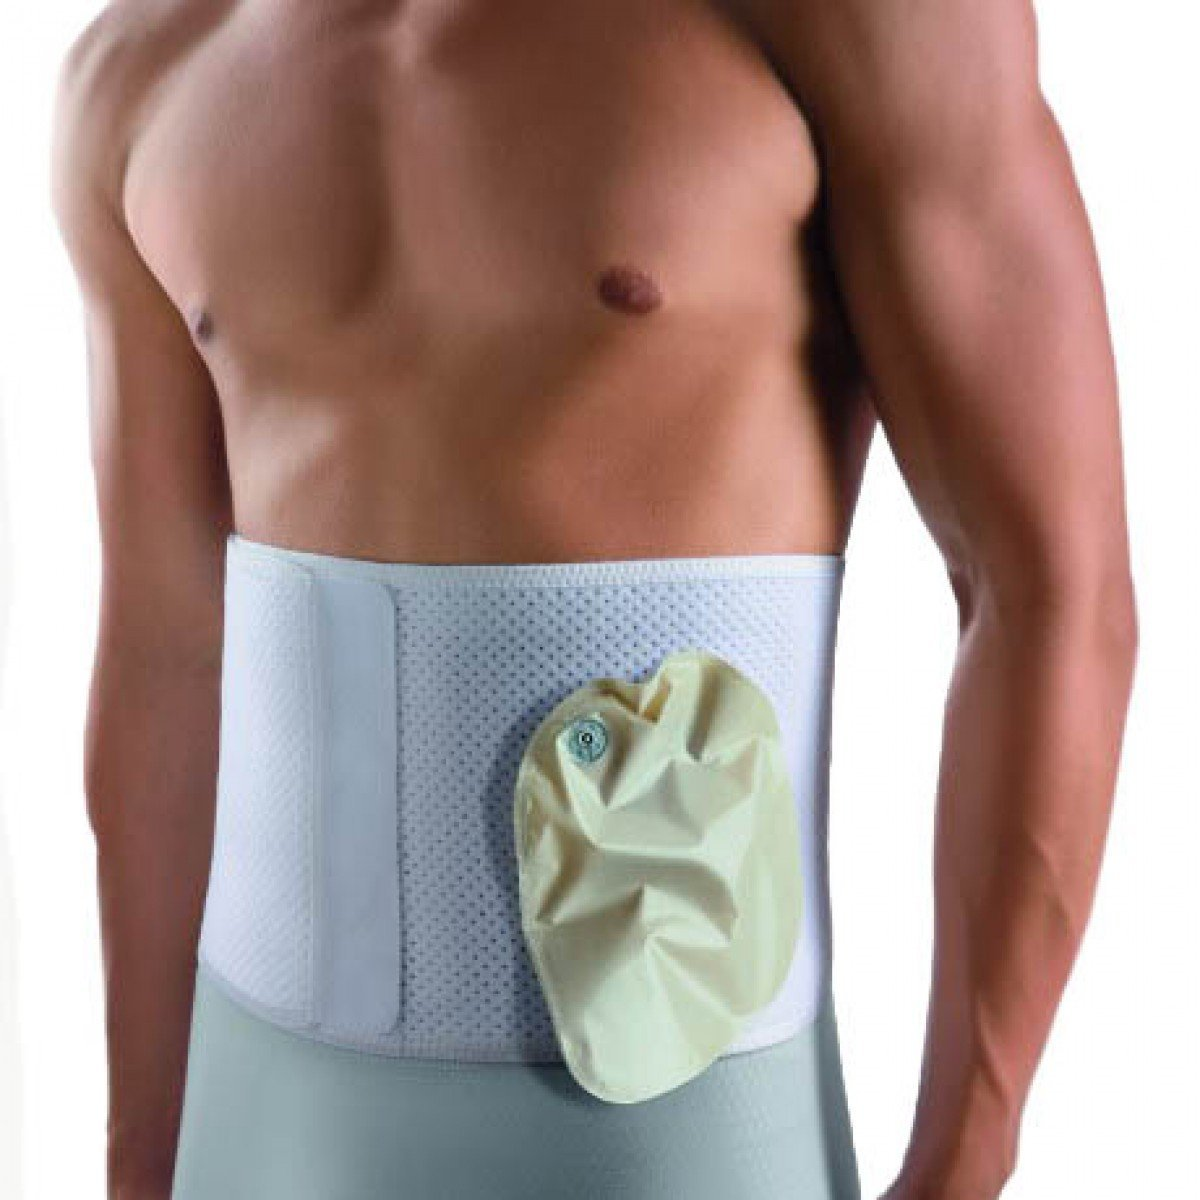 Bort Stoma Support Ostomy Hernia Belt for Colostomy Bag-L by Bort Medical